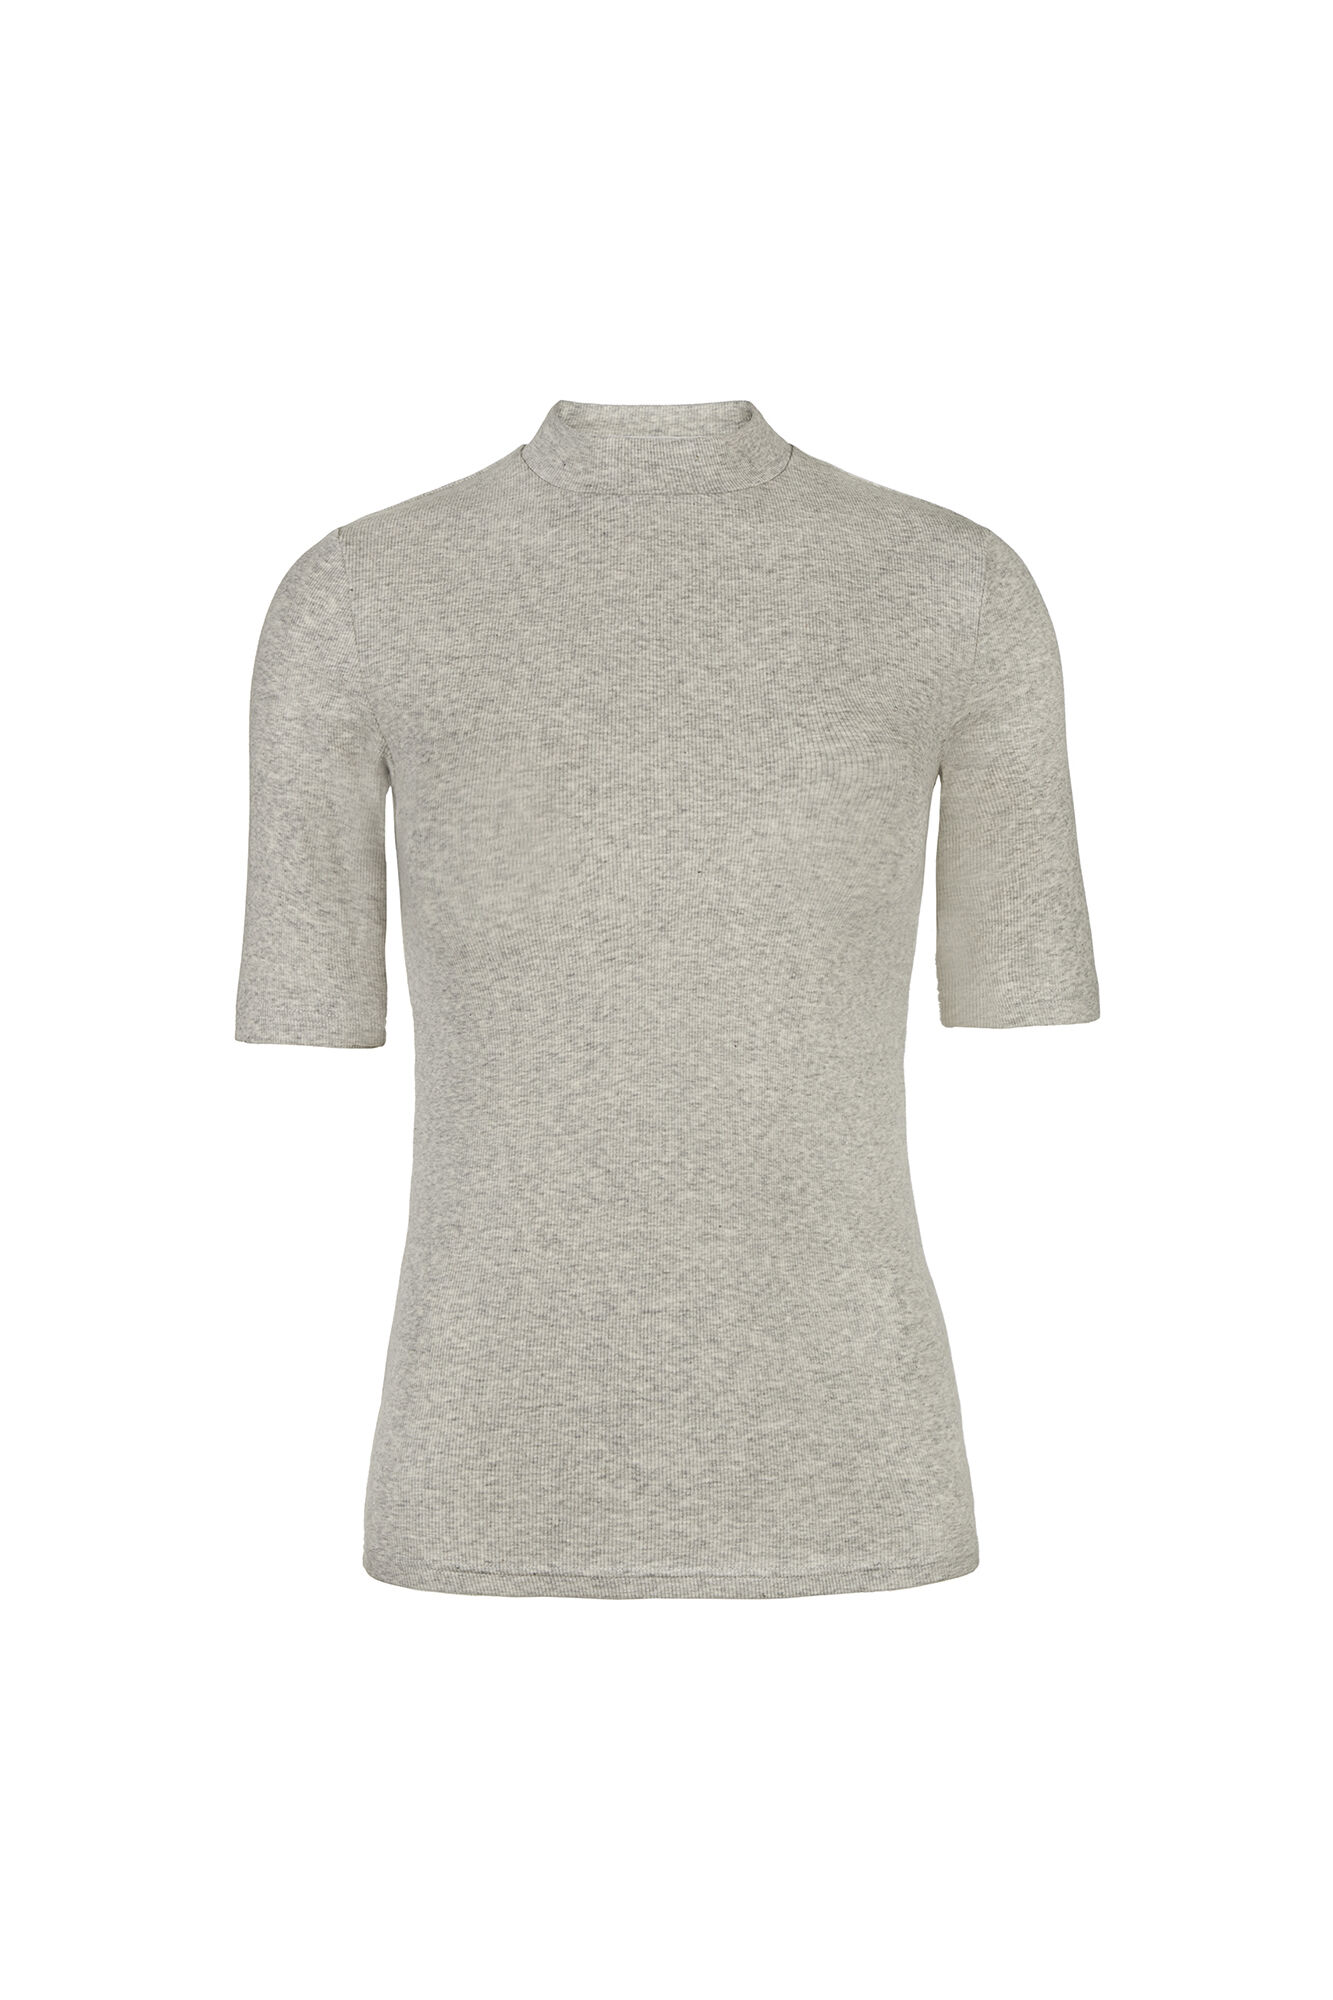 ALLY SS T-NECK 5814, LIGHT GREY MEL.